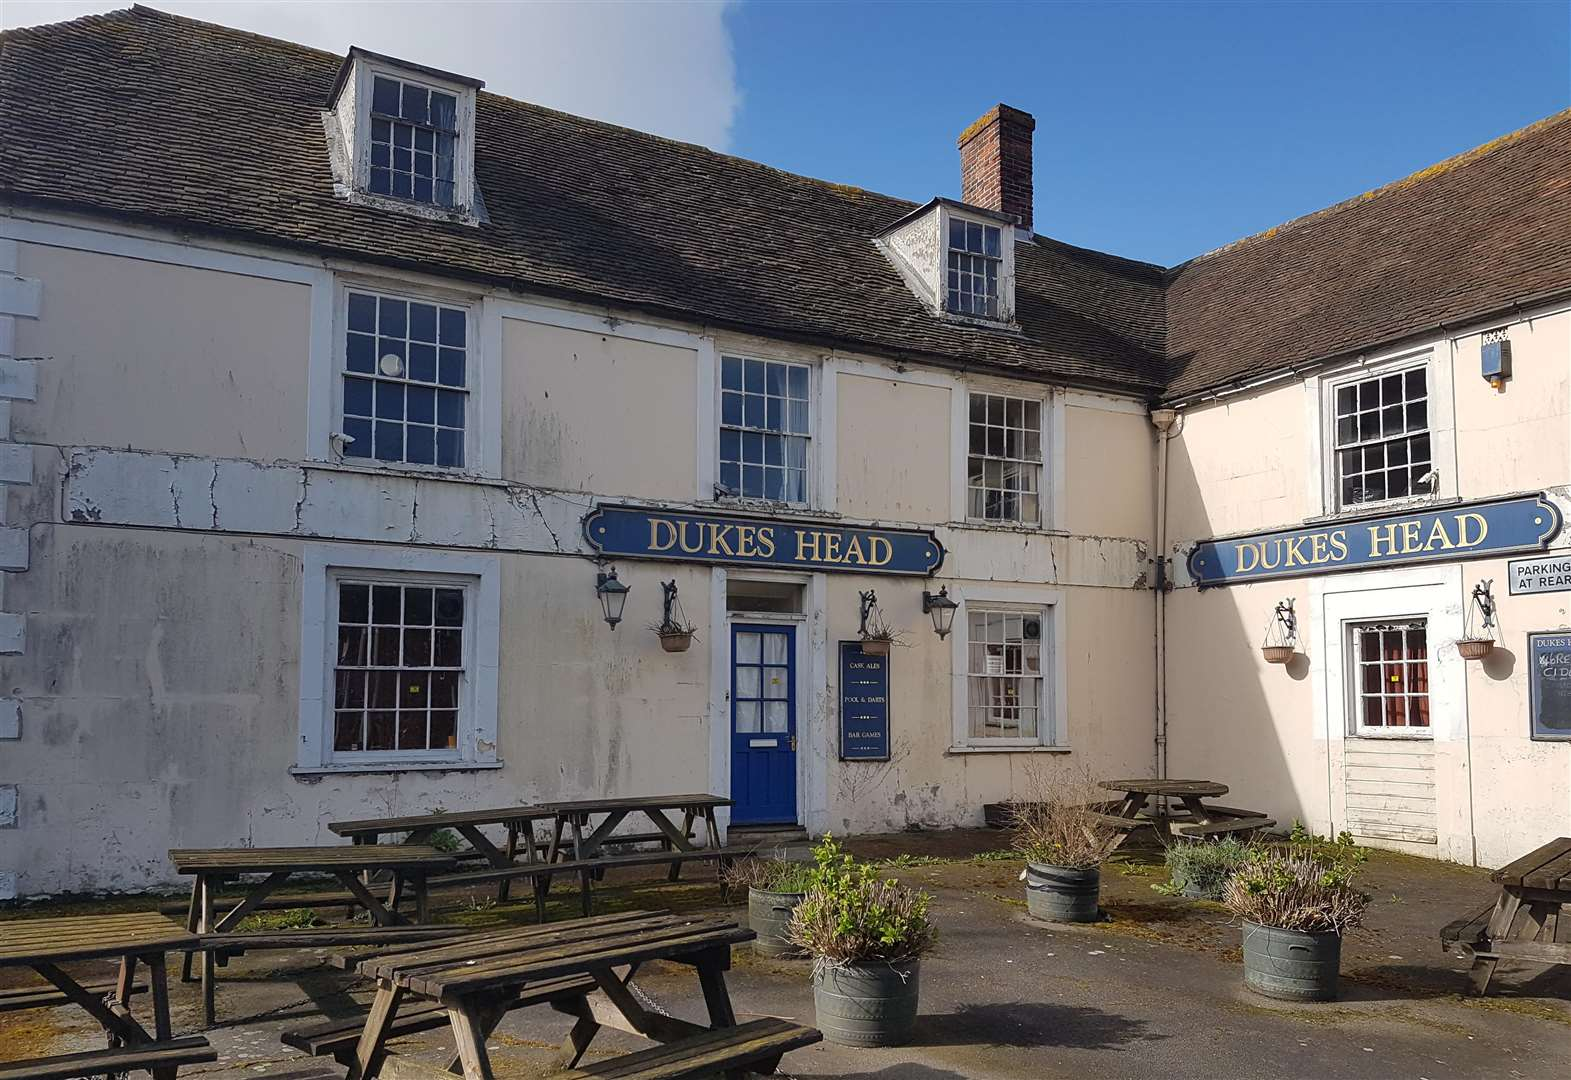 Mystery surrounds former pub on sale for £1 million